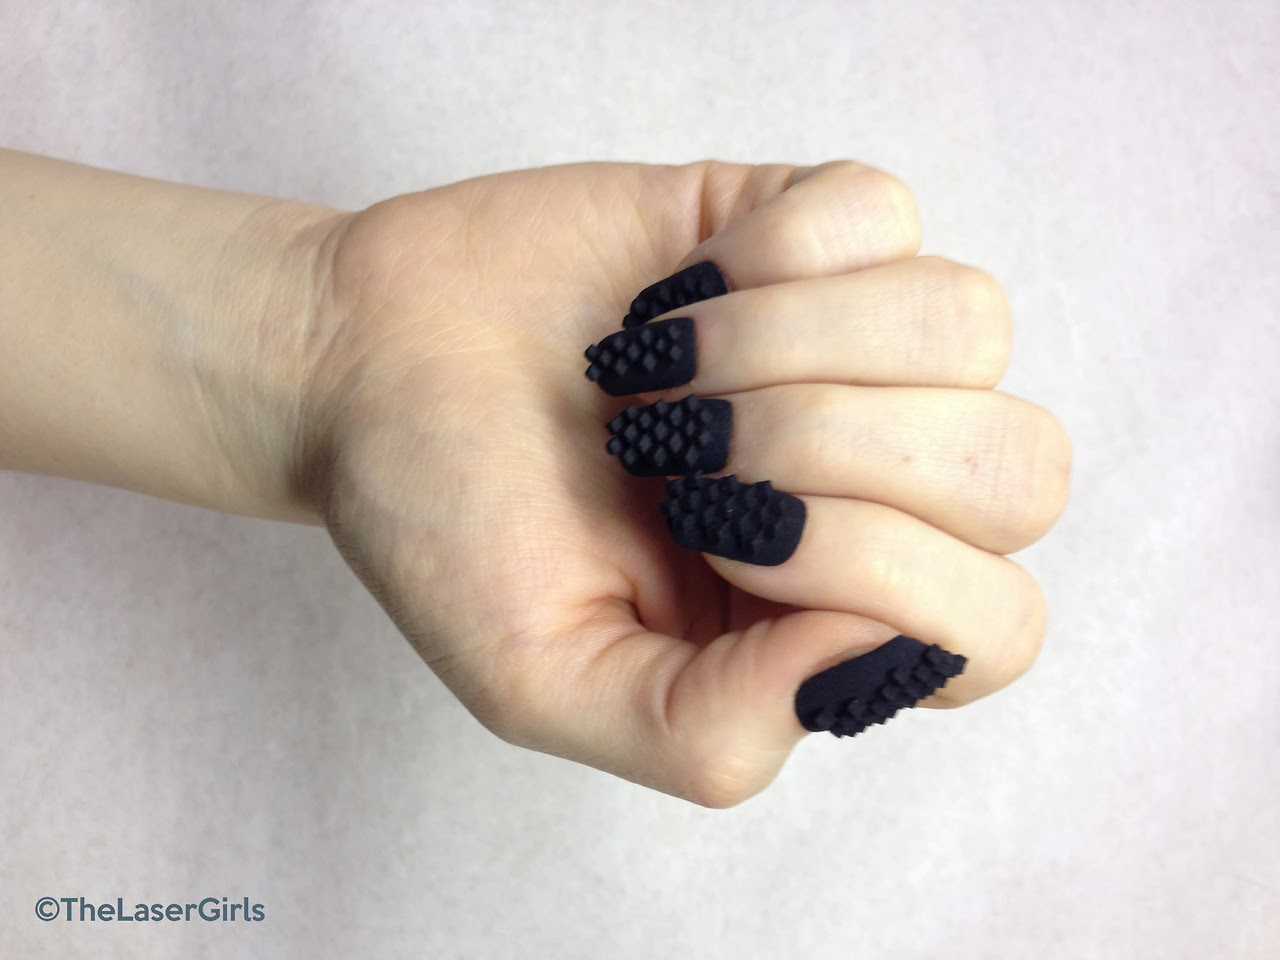 3D Printed Nail Art By The Laser Girls